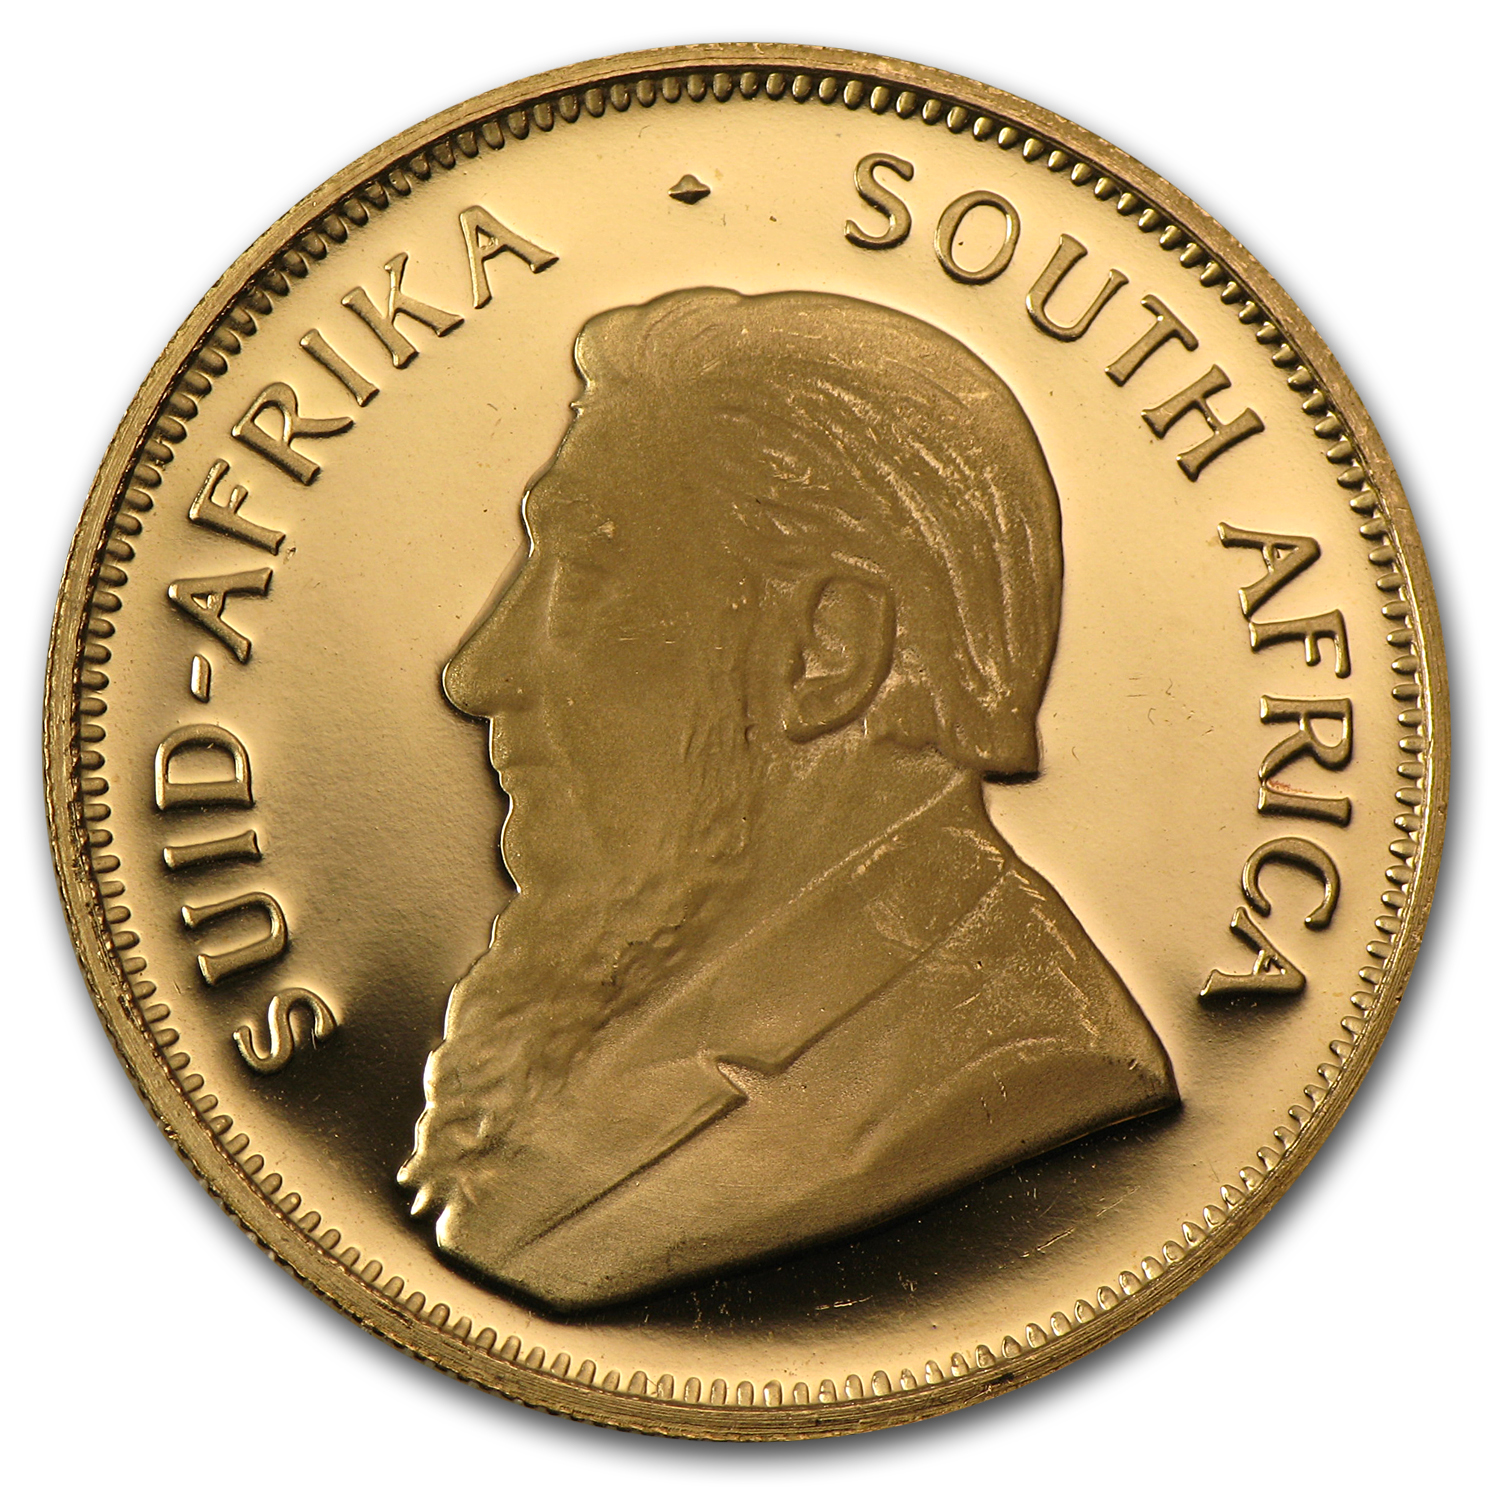 1984 1/2 oz Gold South African Krugerrand (Proof)